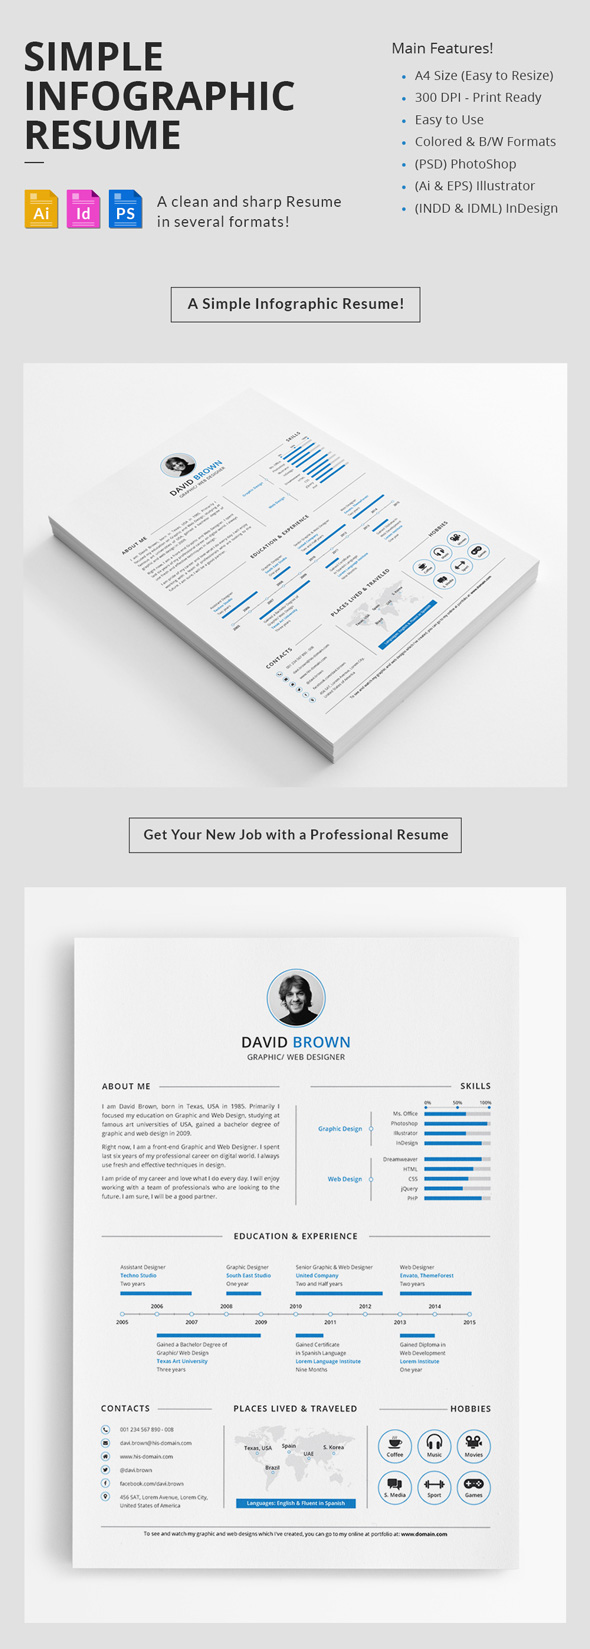 Amazing Simple Infographic Resume Design